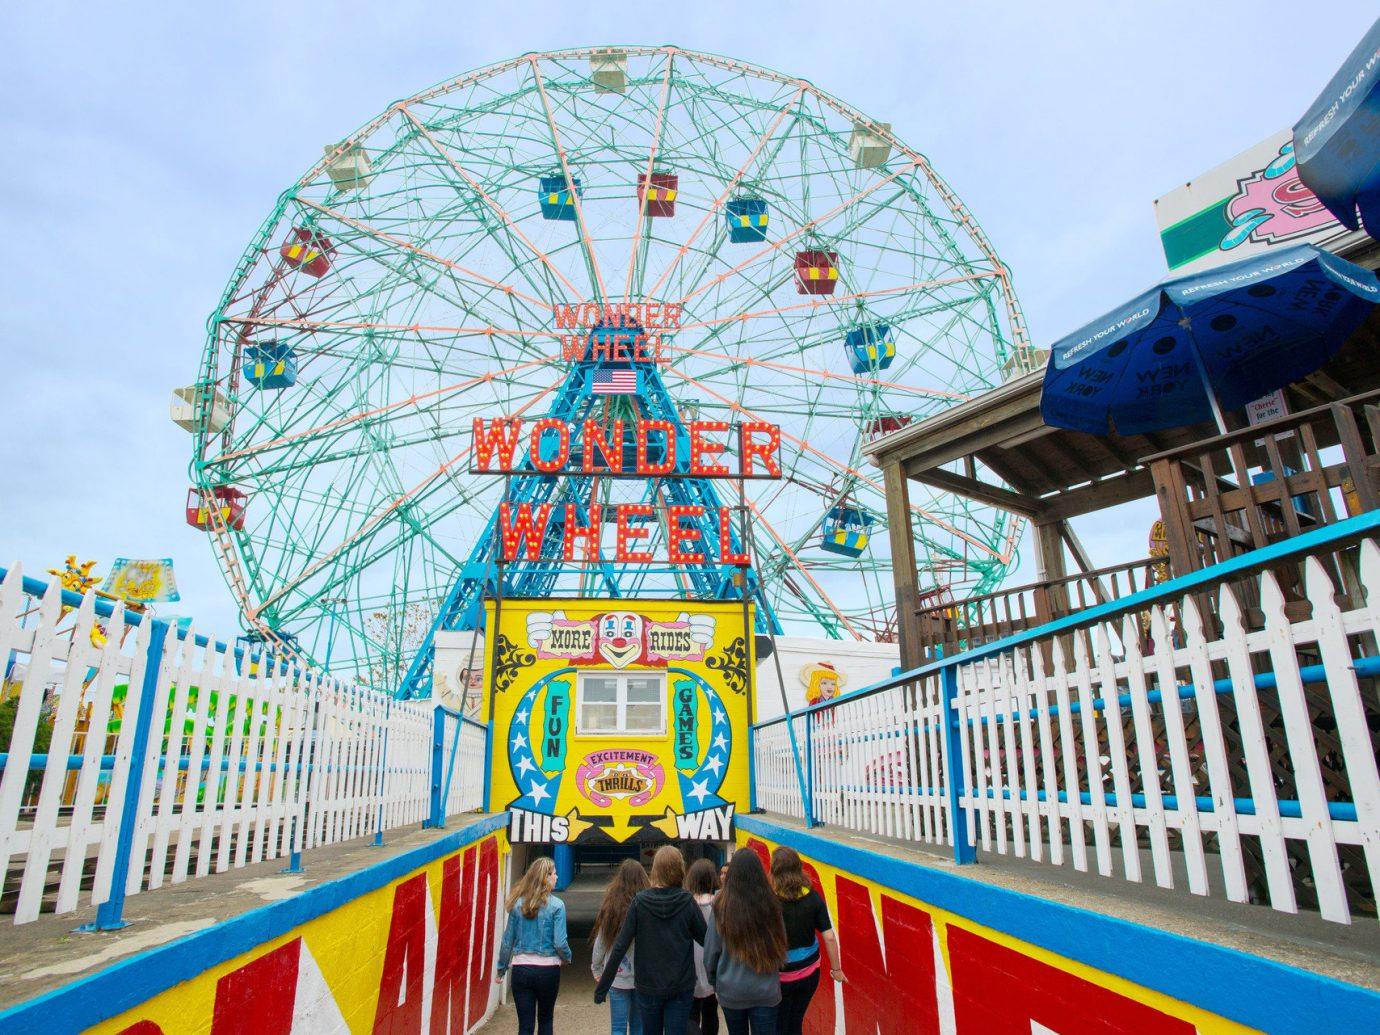 Trip Ideas sky amusement park outdoor amusement ride park ferris wheel leisure fair roller coaster recreation outdoor recreation colorful nonbuilding structure tourist attraction Carousel festival ride